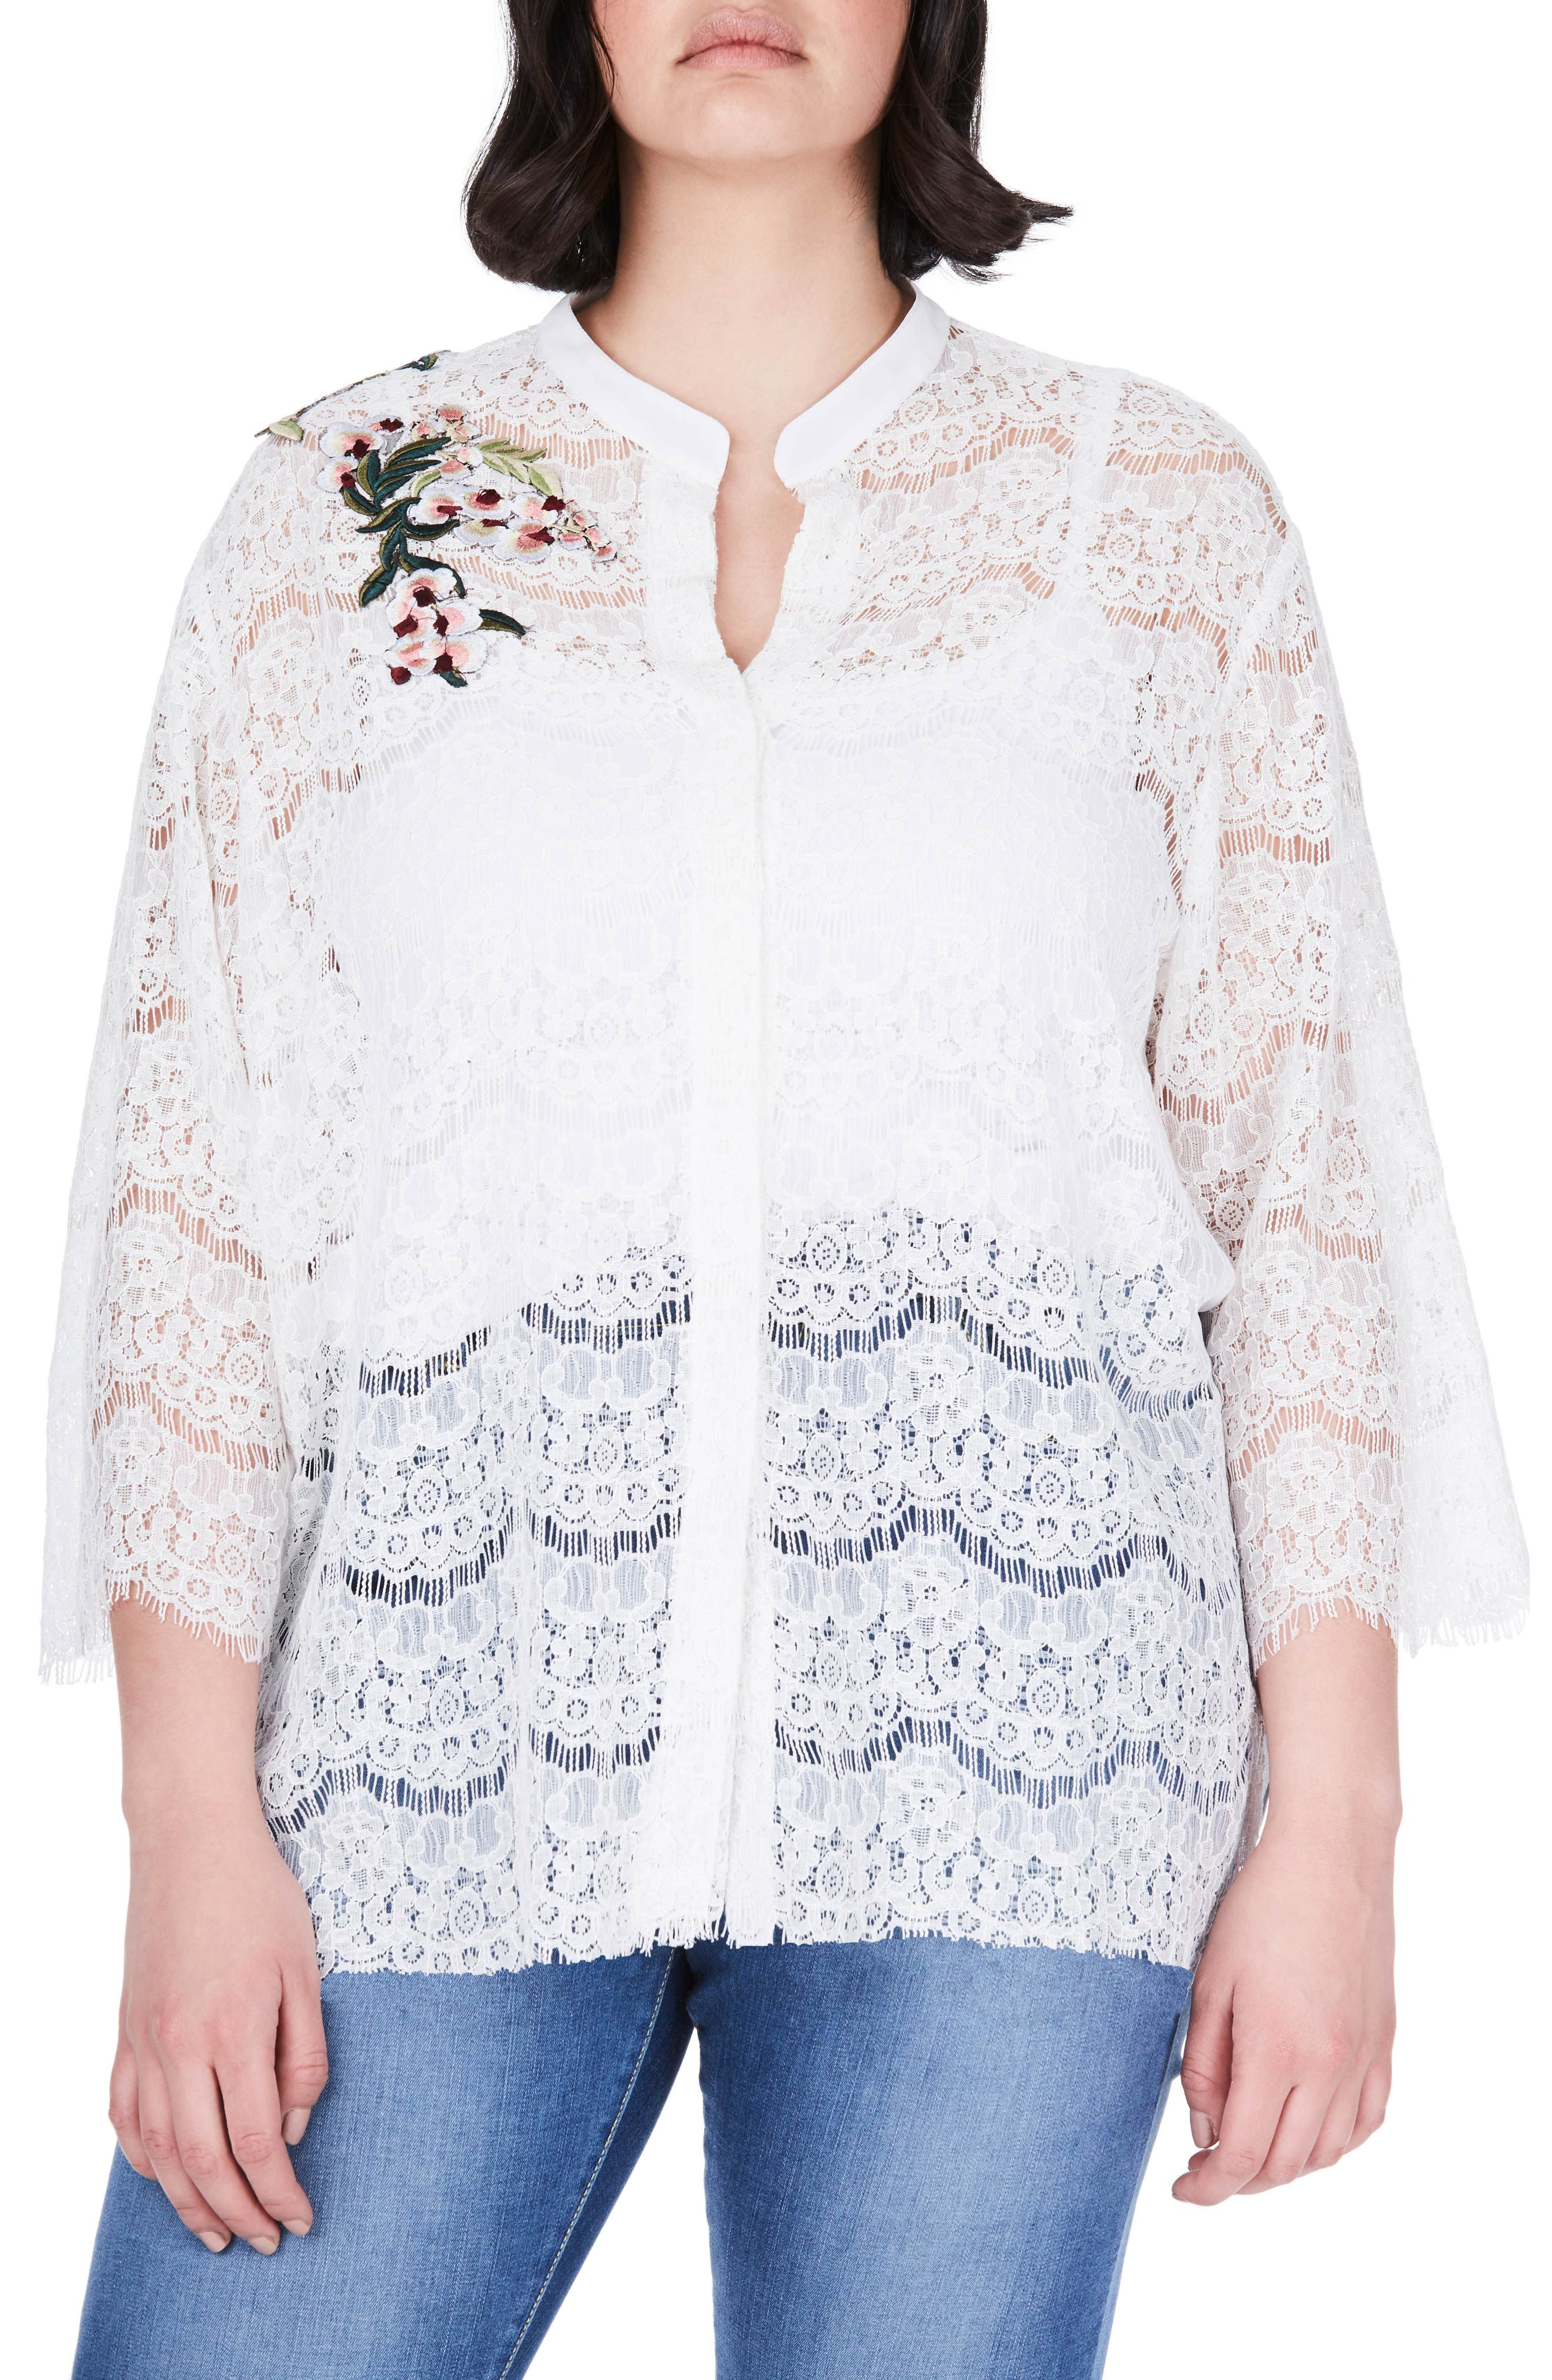 Main Image - ELVI Floral Embroidered Lace Top (Plus Size)